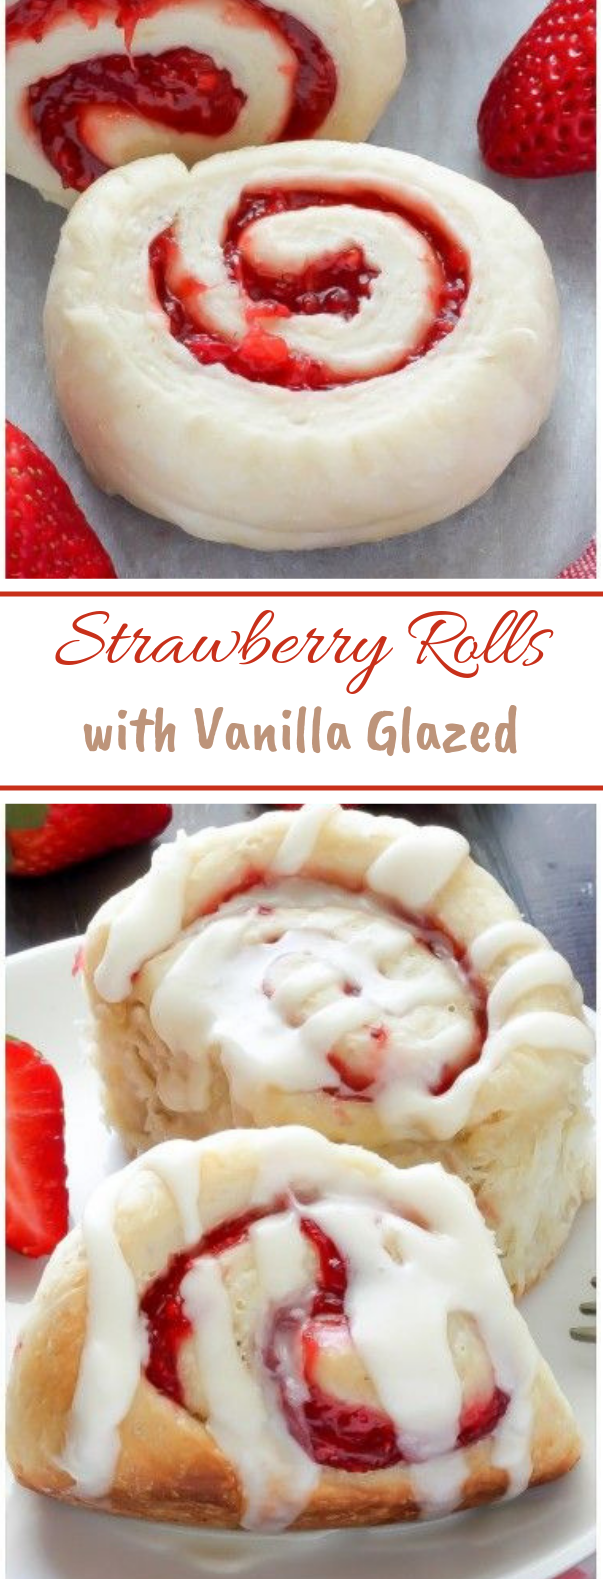 Strawberry Rolls with Vanilla Glaze #summerrecipe #desserts